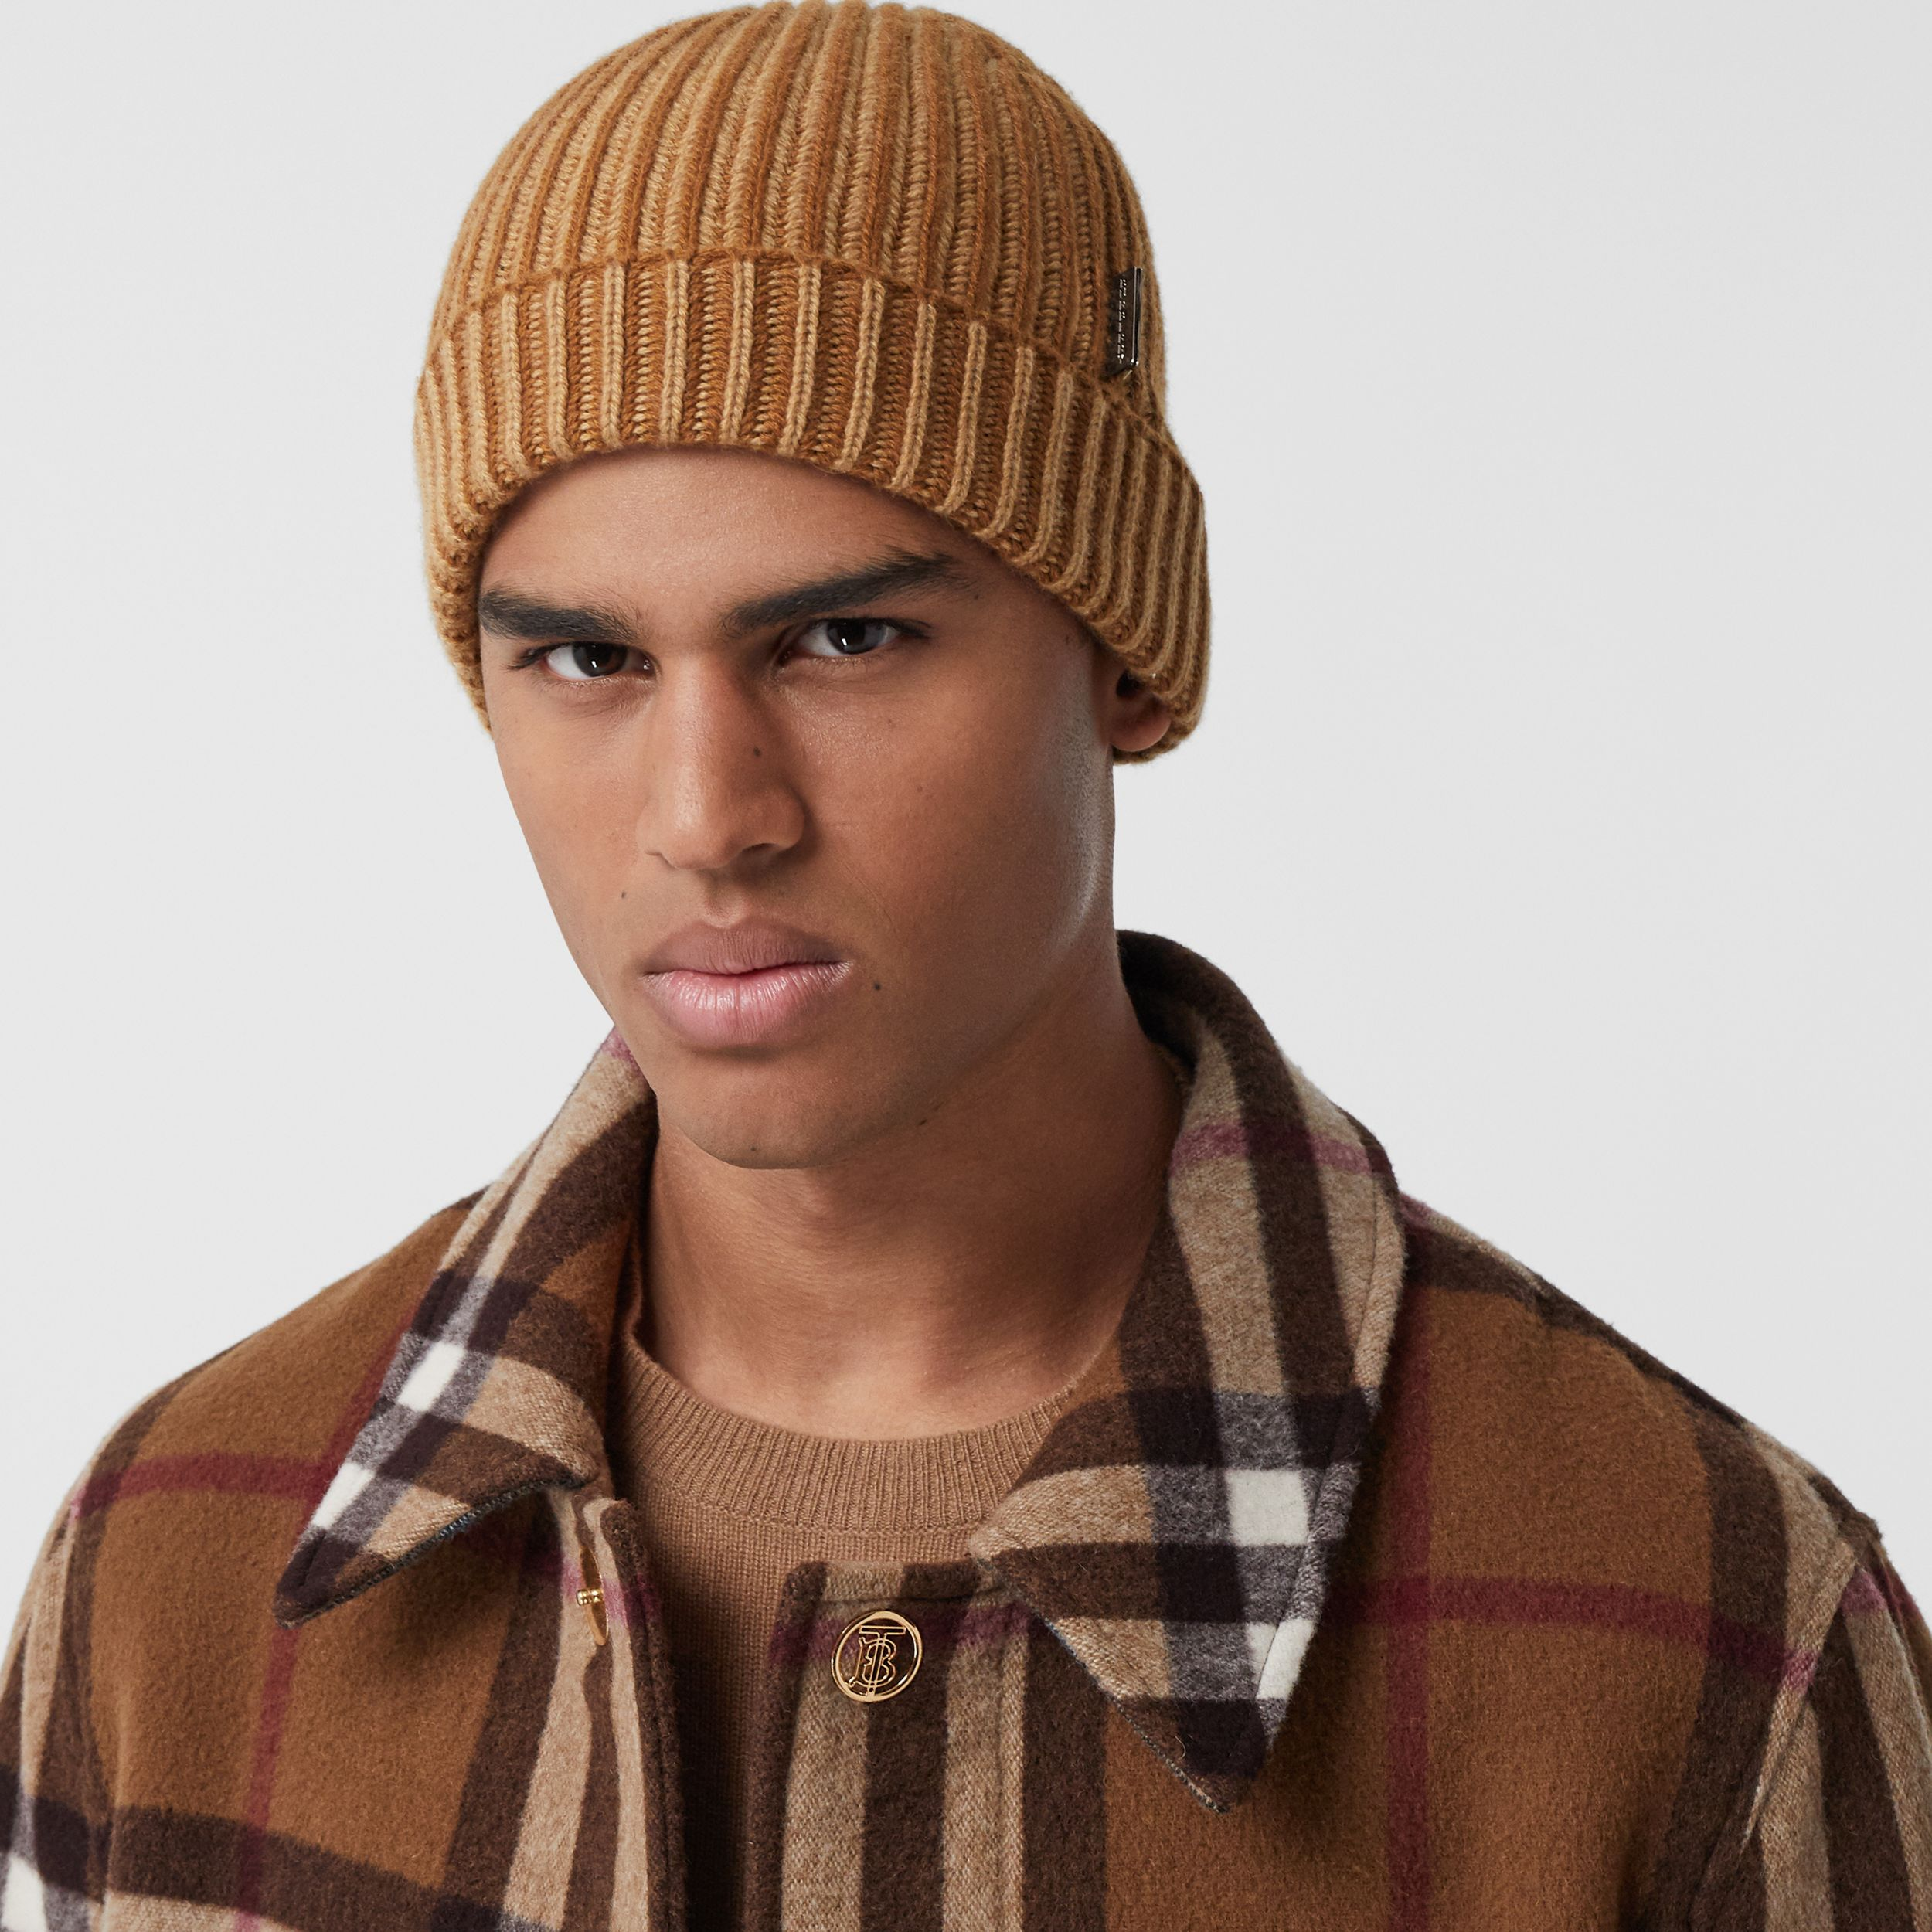 Rib Knit Cashmere Beanie in Camel | Burberry United Kingdom - 4